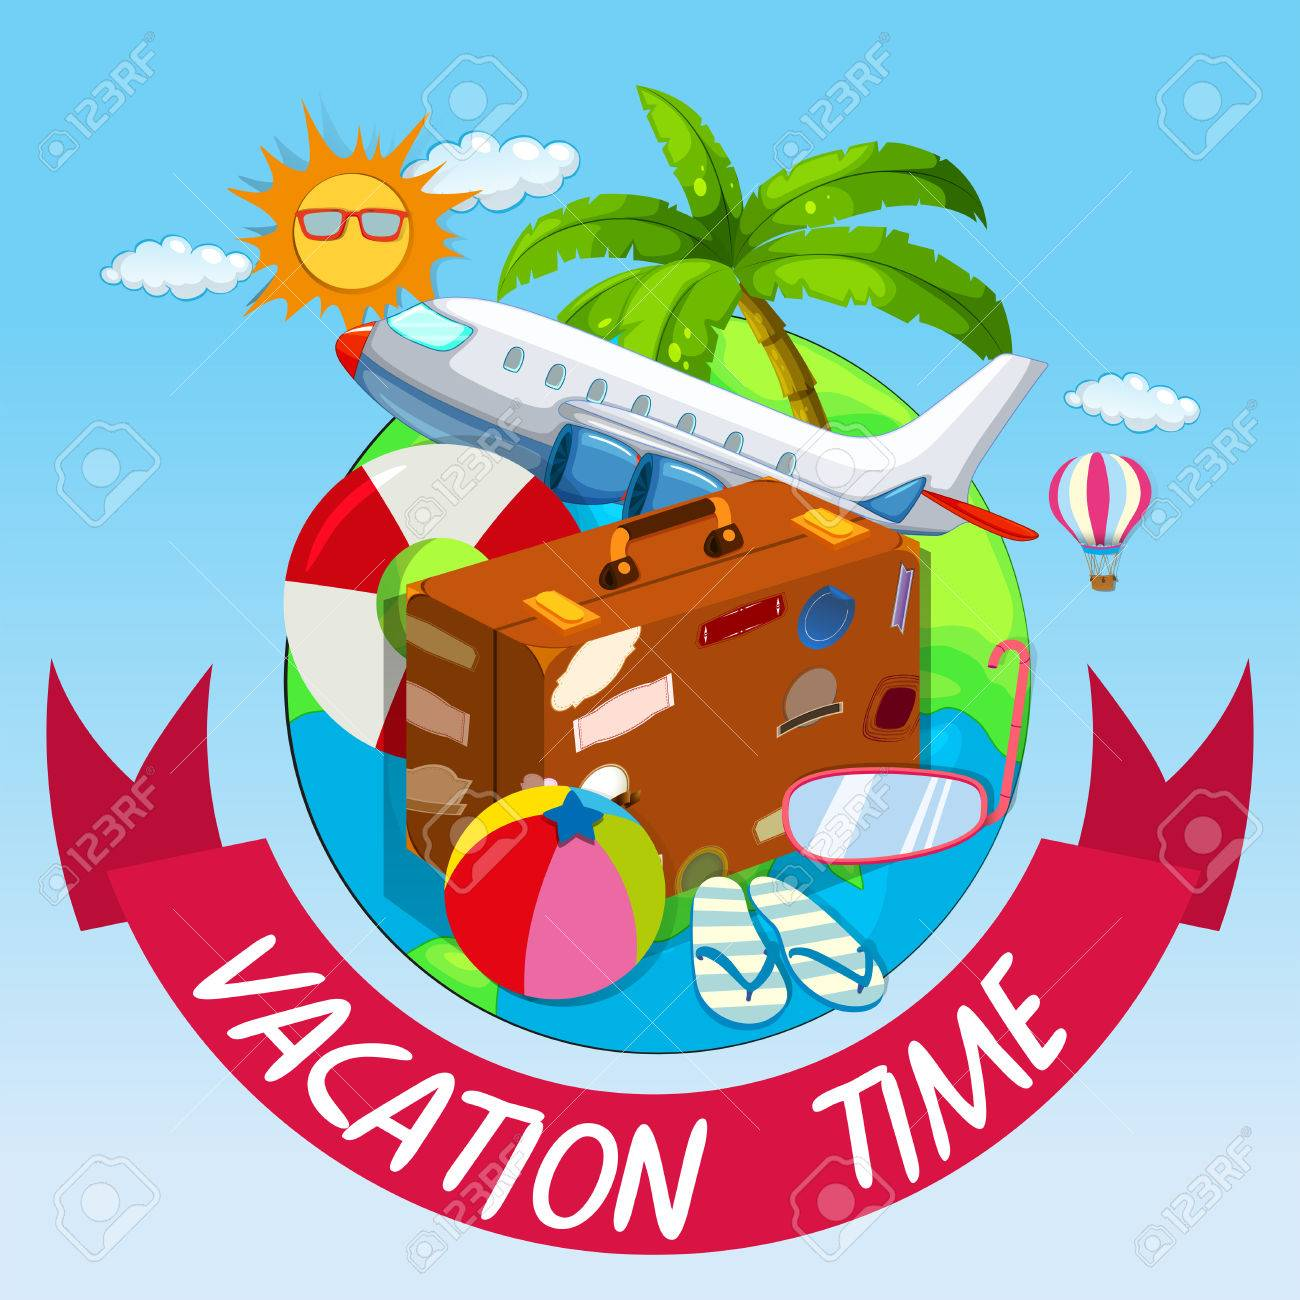 Vacation Time With Bag And Airplane Illustration Stock Vector